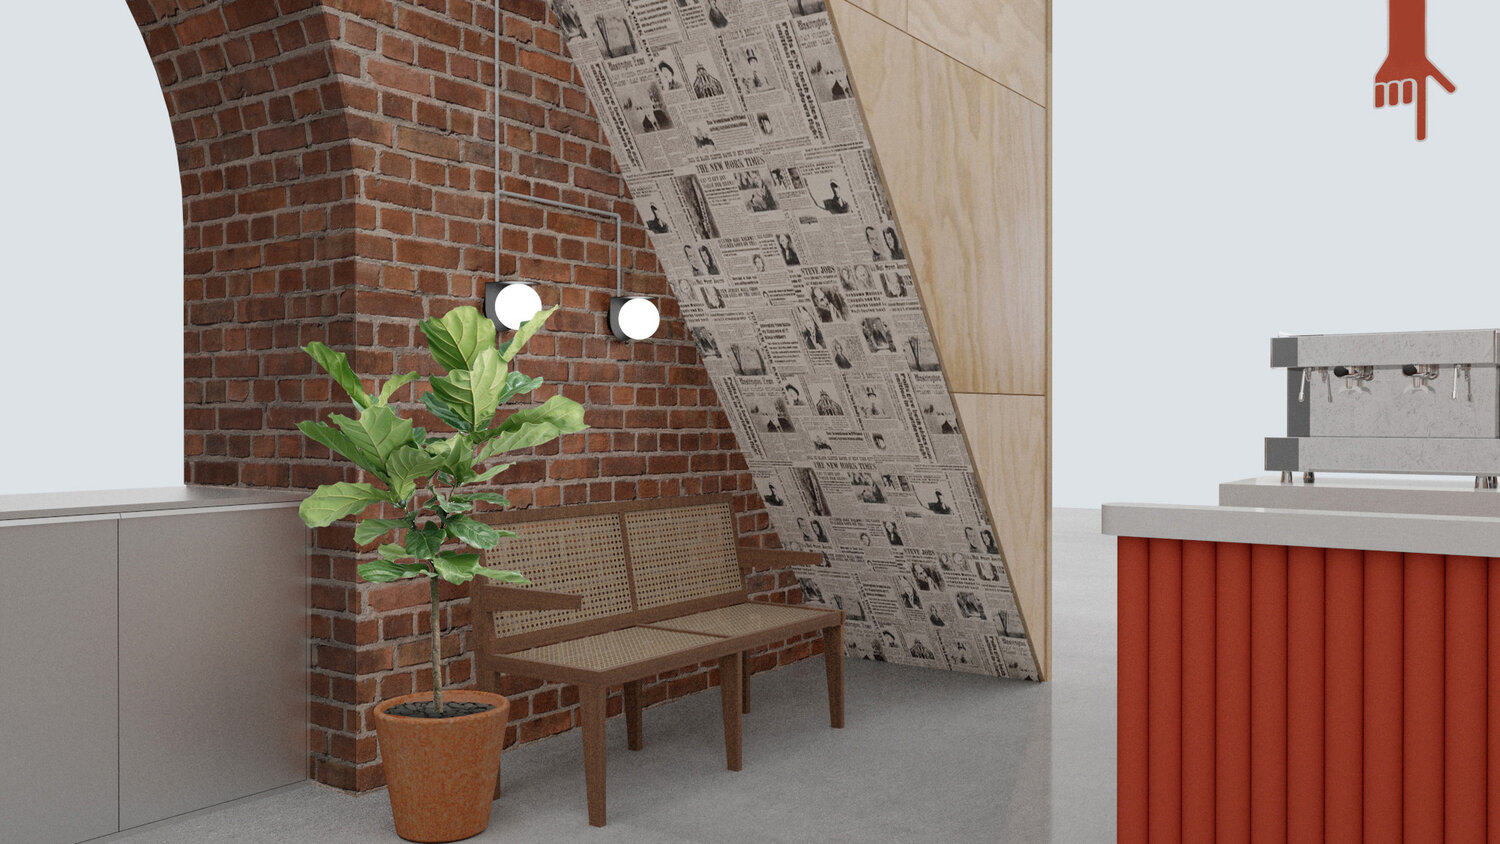 lunarlunar_interior_design_cafe_good_coffee_route 1_maltby_street_staircase.jpg